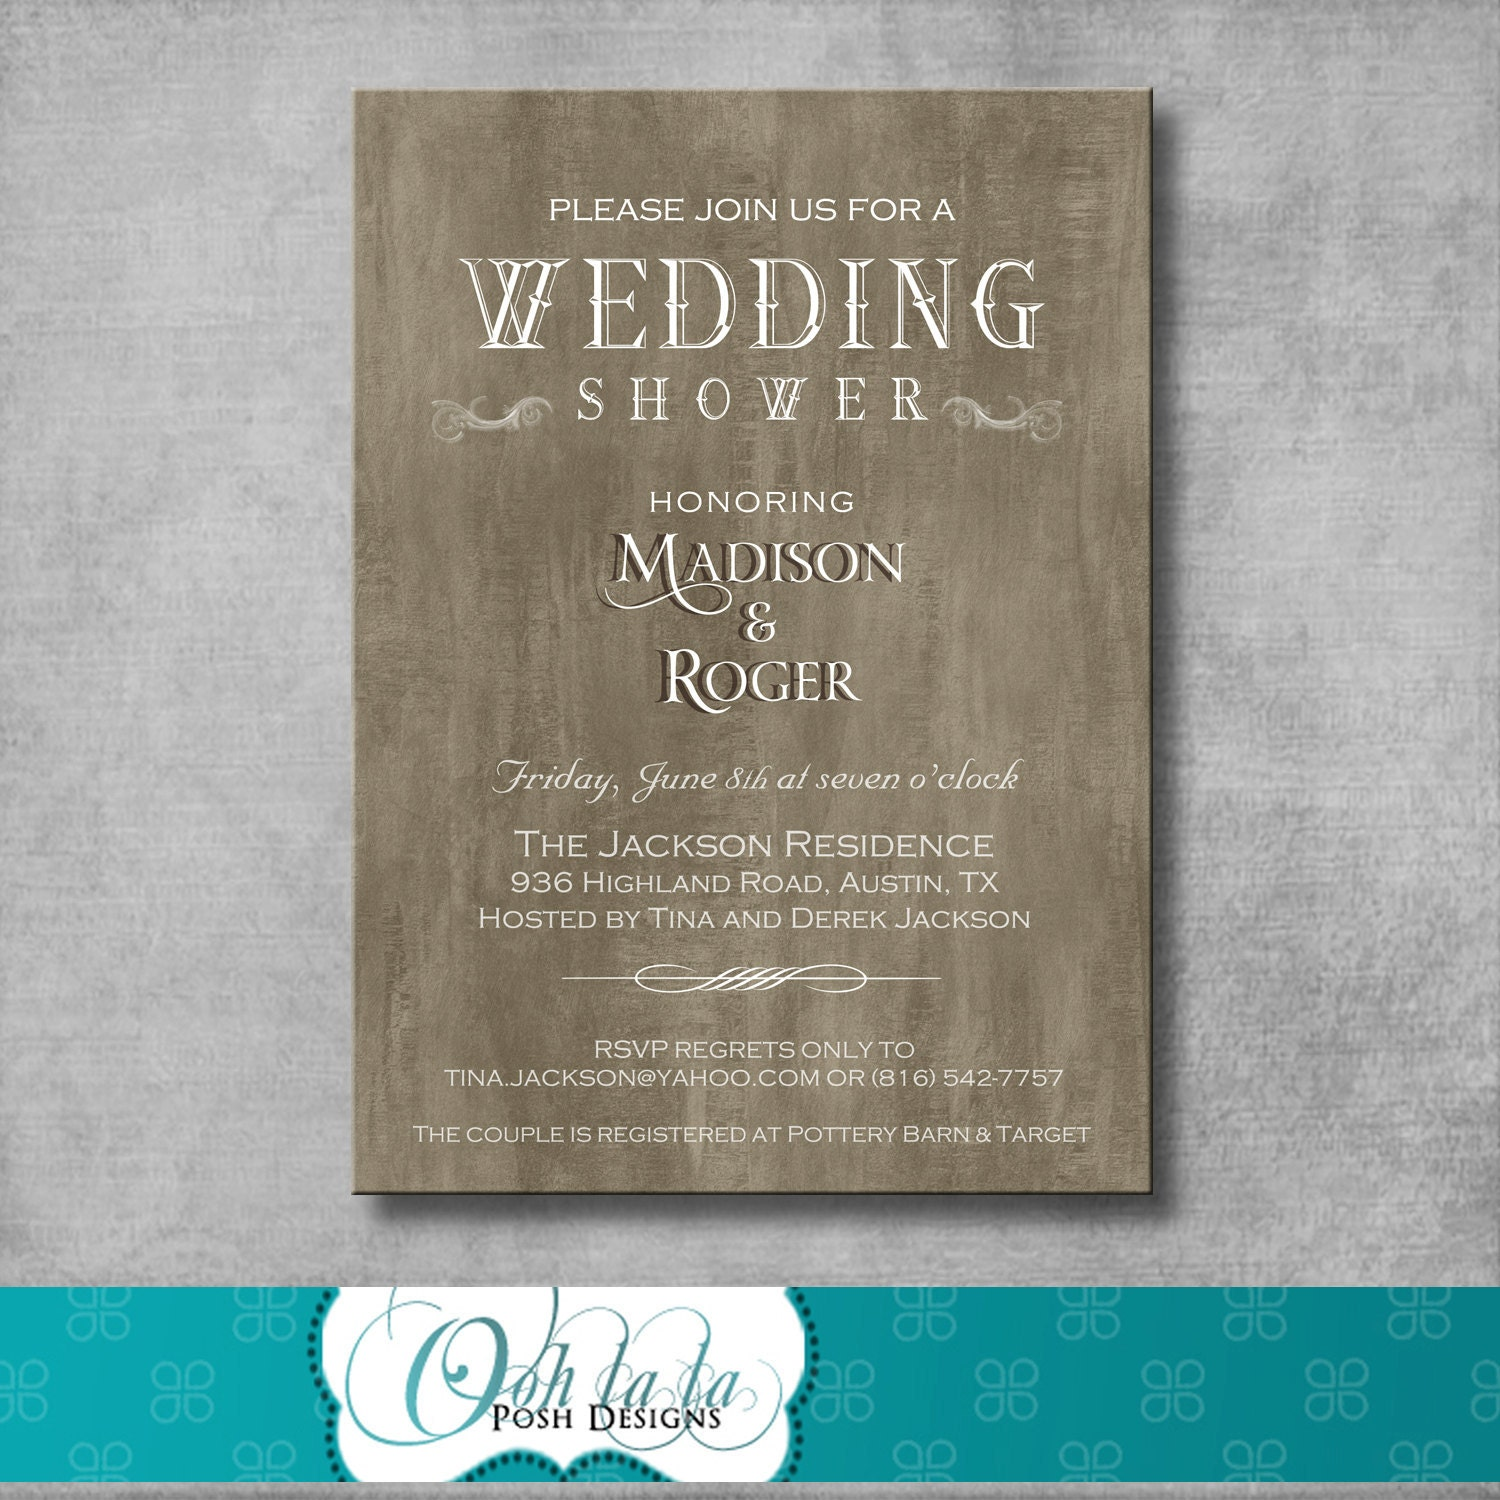 Rustic elegant wedding shower invitation by oohlalaposhdesigns for Invitations for wedding shower